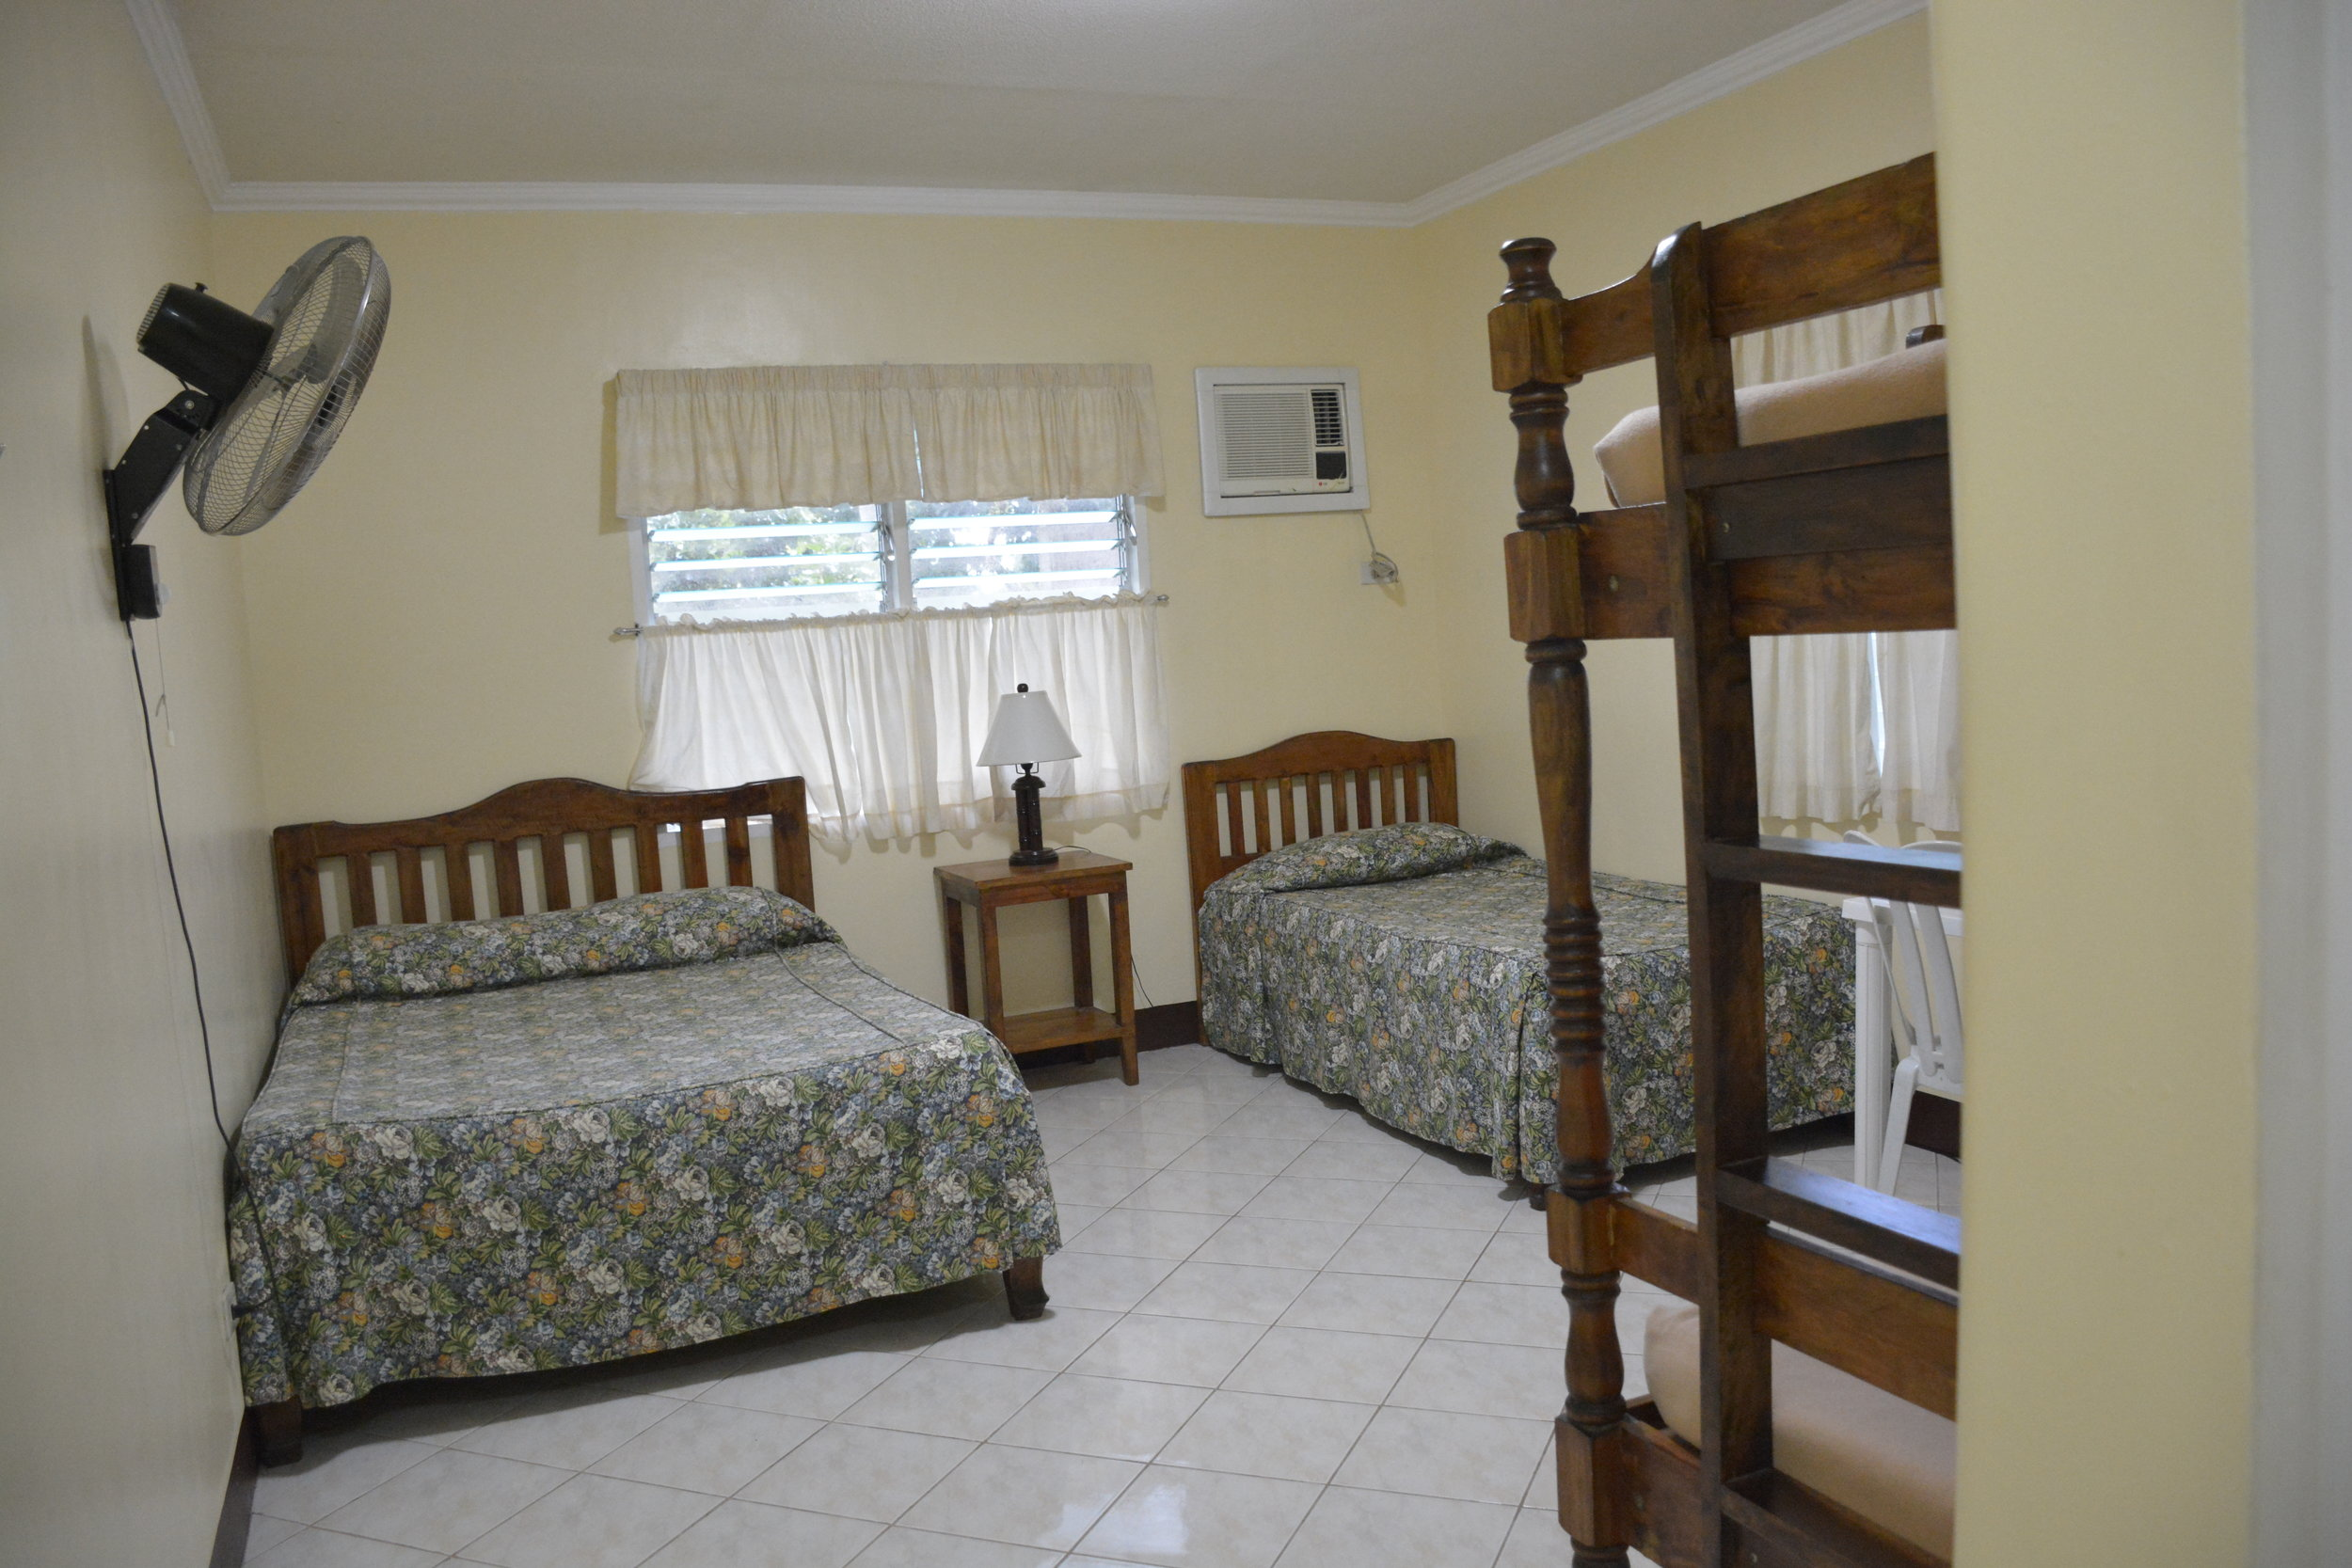 Family AC rooms.   This package includes AC Guest Rooms. These rates below are based on the number of occupants per room. It is possible to put 5 in a room with an extra mattress or bed sharing. Rooms are assigned by chosen occupancy rates per room.  1. Single Occupancy Php 4100 per person  2. Double Occupancy Php 2650 per person  3. Triple Occupancy Php 2067 per person  4. Quadruple Occupancy Php 1775 per person  5. Quintuple Occupancy Php 1600 per person